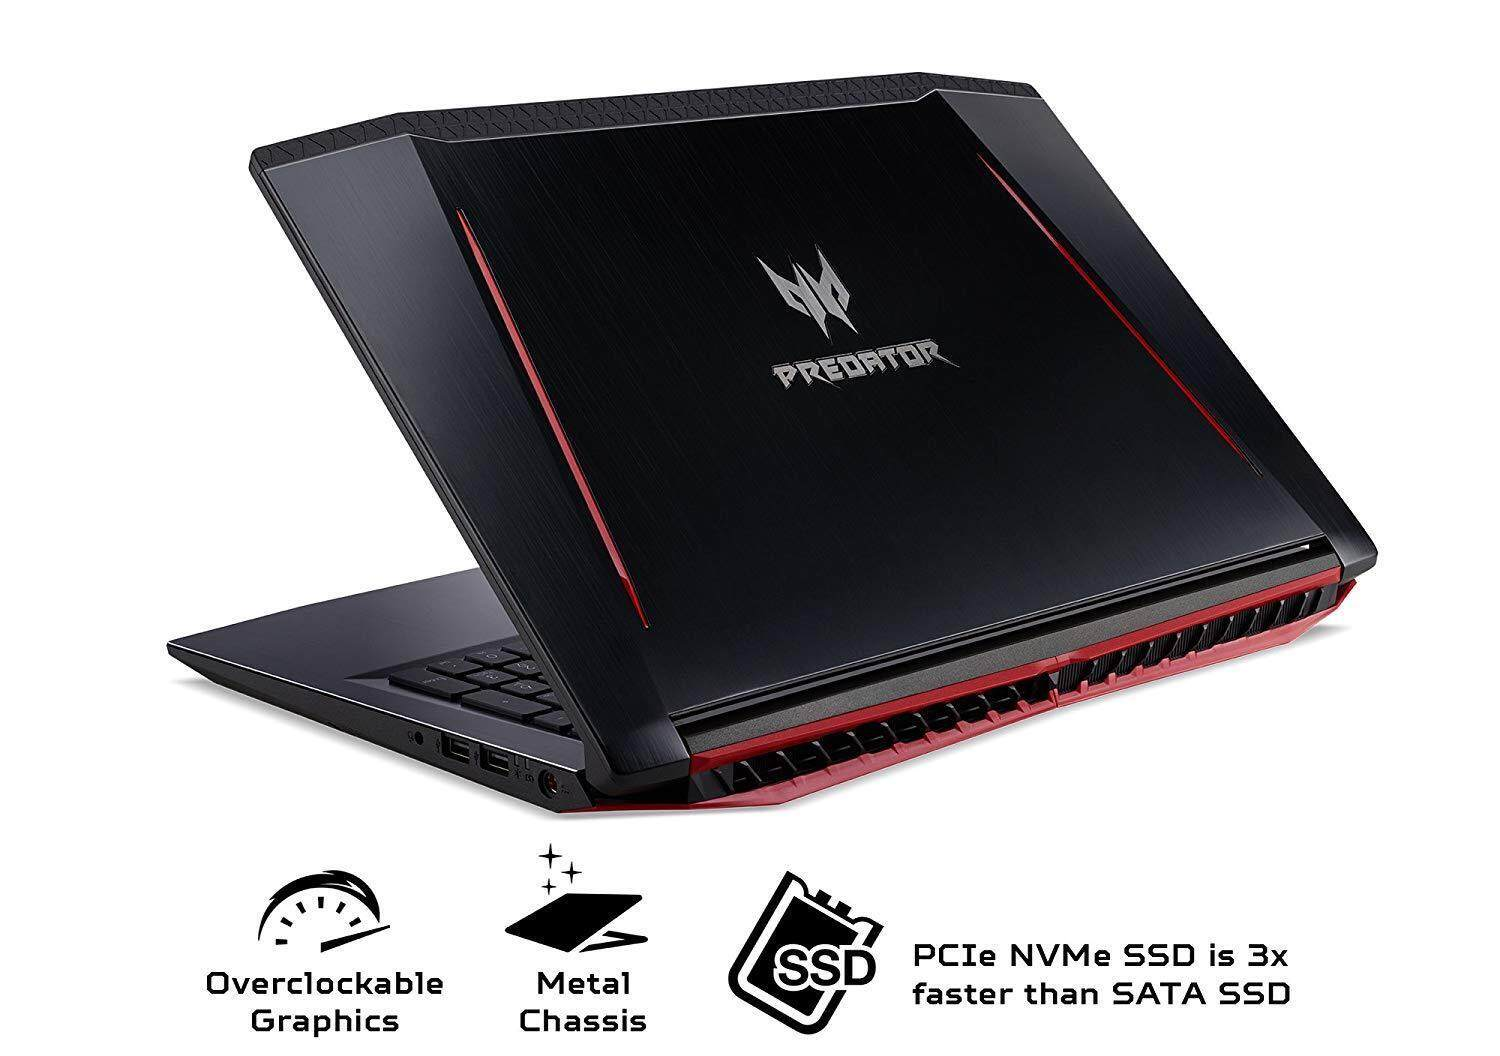 ACER PREDATOR HELIOS 300 Core i7-8750H Gaming, 15.6 HD IPS 144Hz, PH315-51-78NP Malaysia